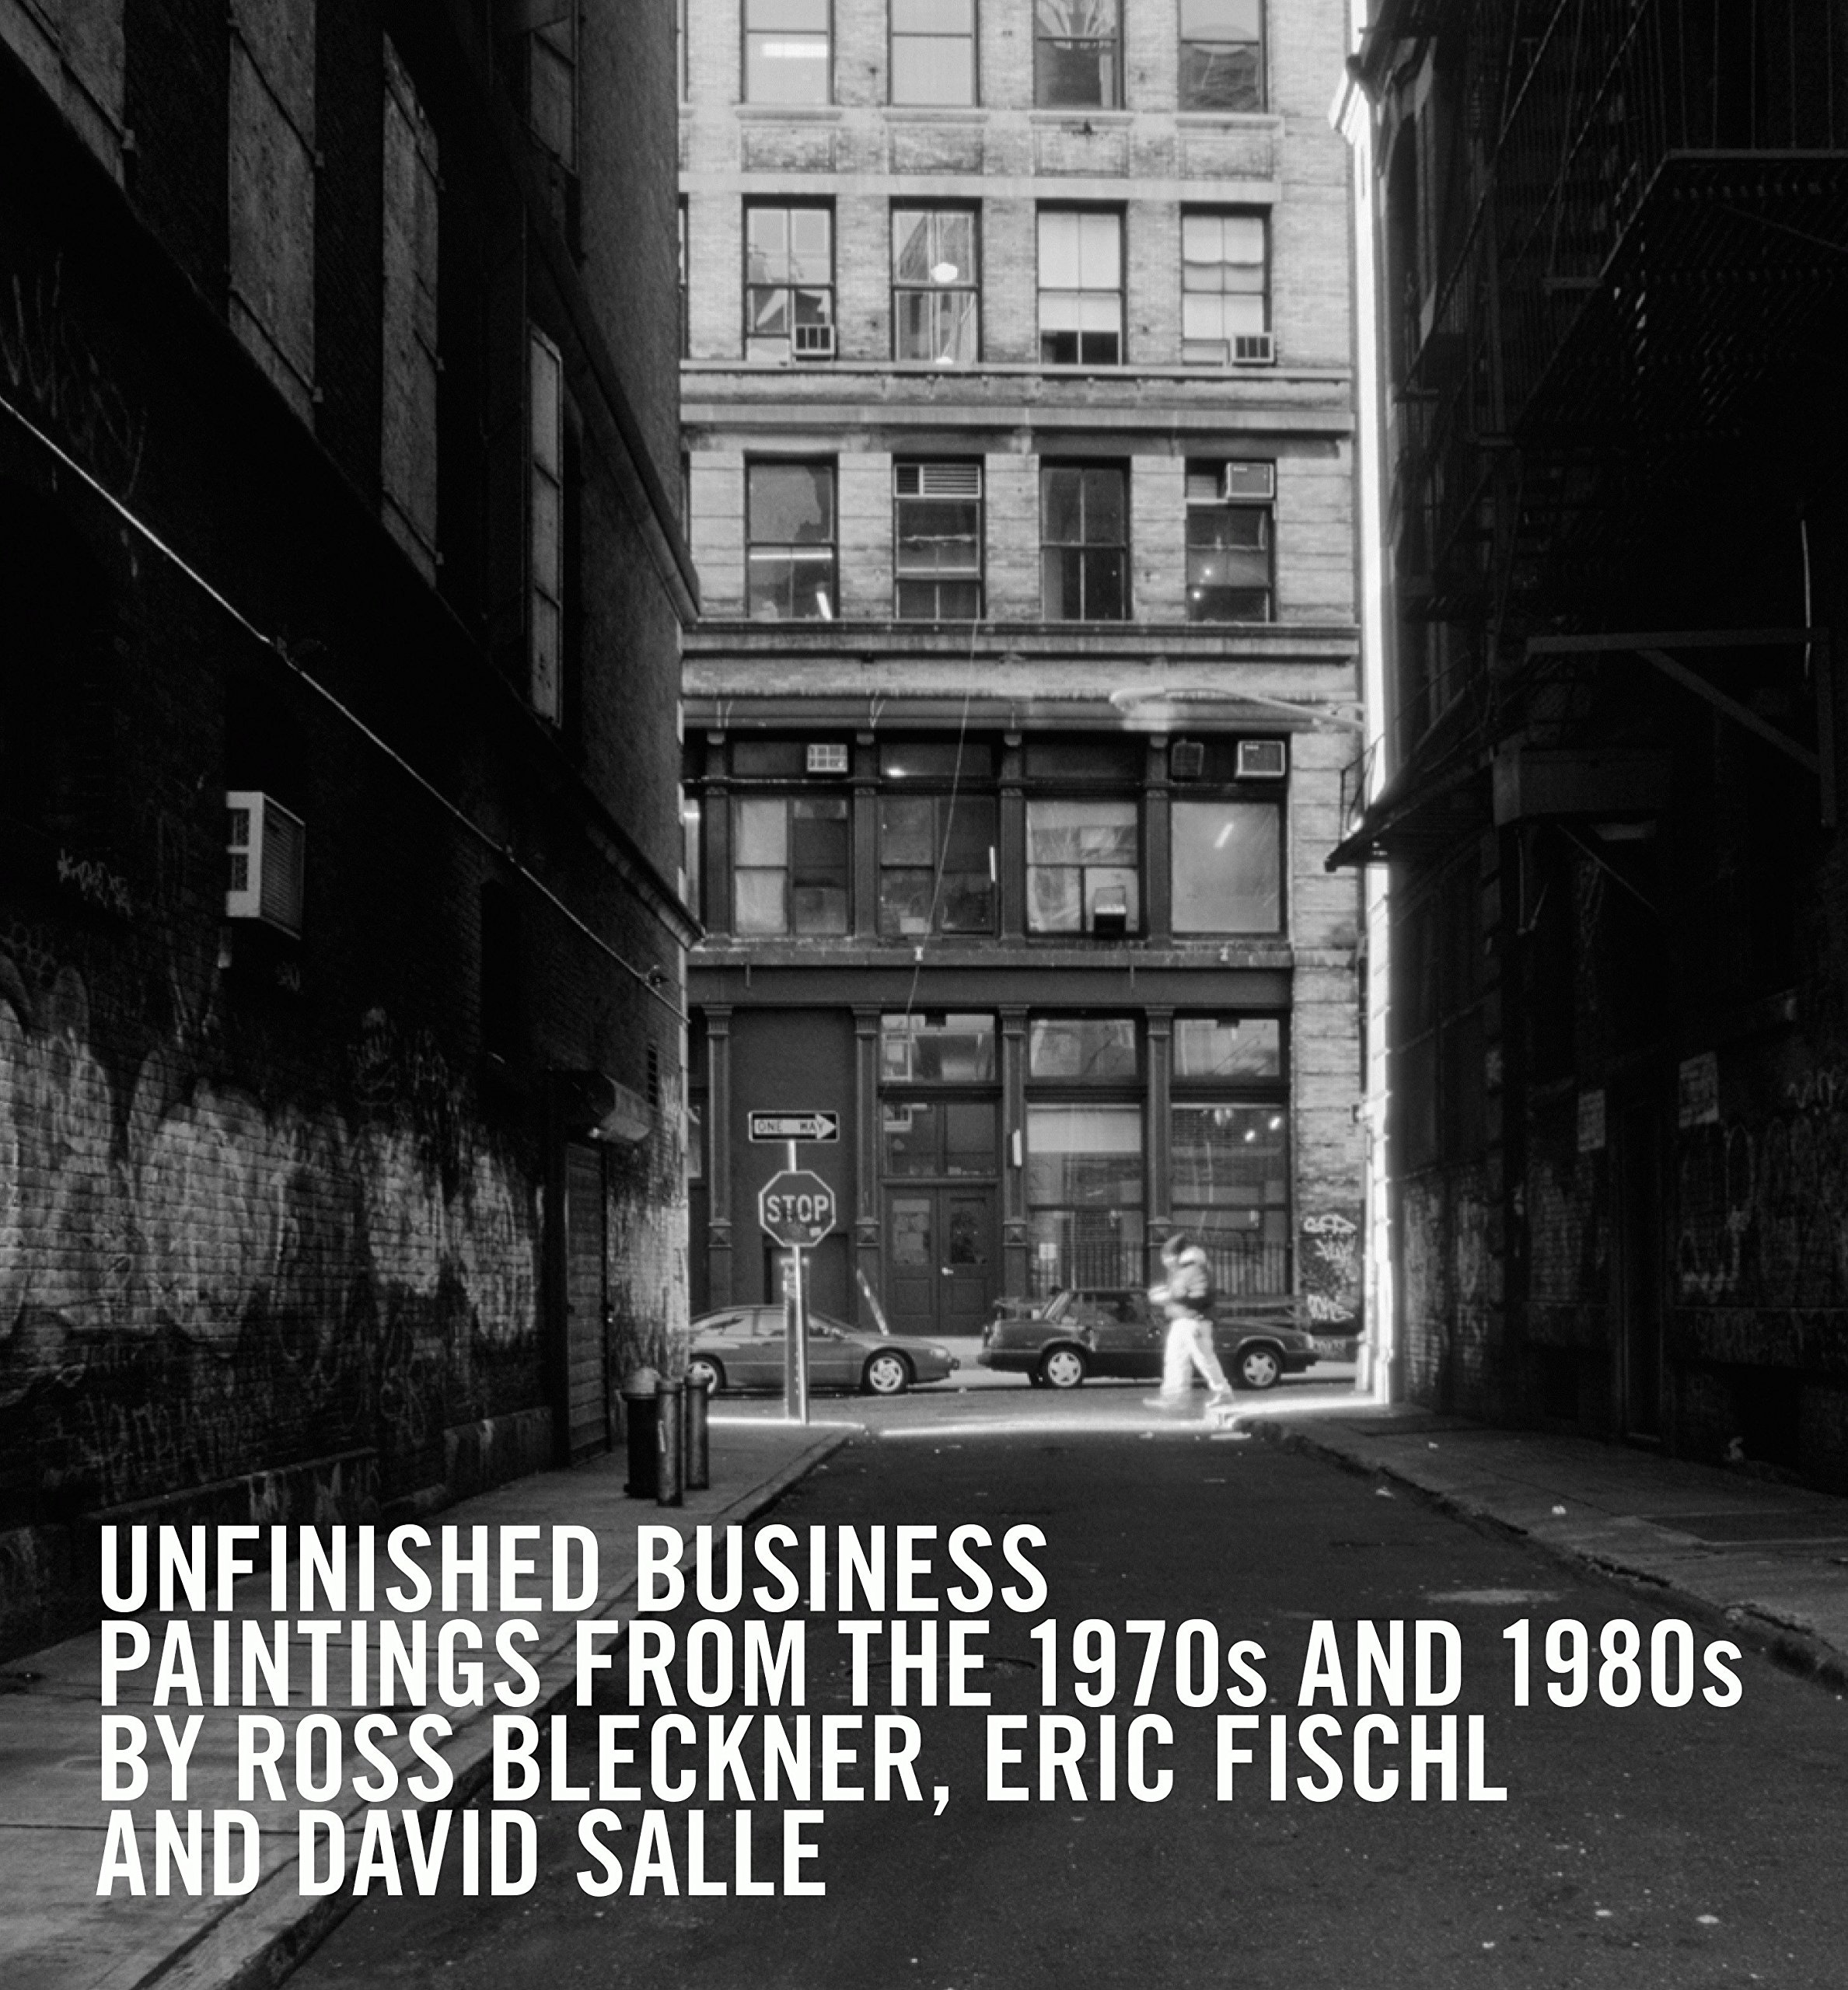 Download Unfinished Business: Paintings From the 1970s and 1980s by Ross Bleckner, Eric Fischl and David Salle ebook